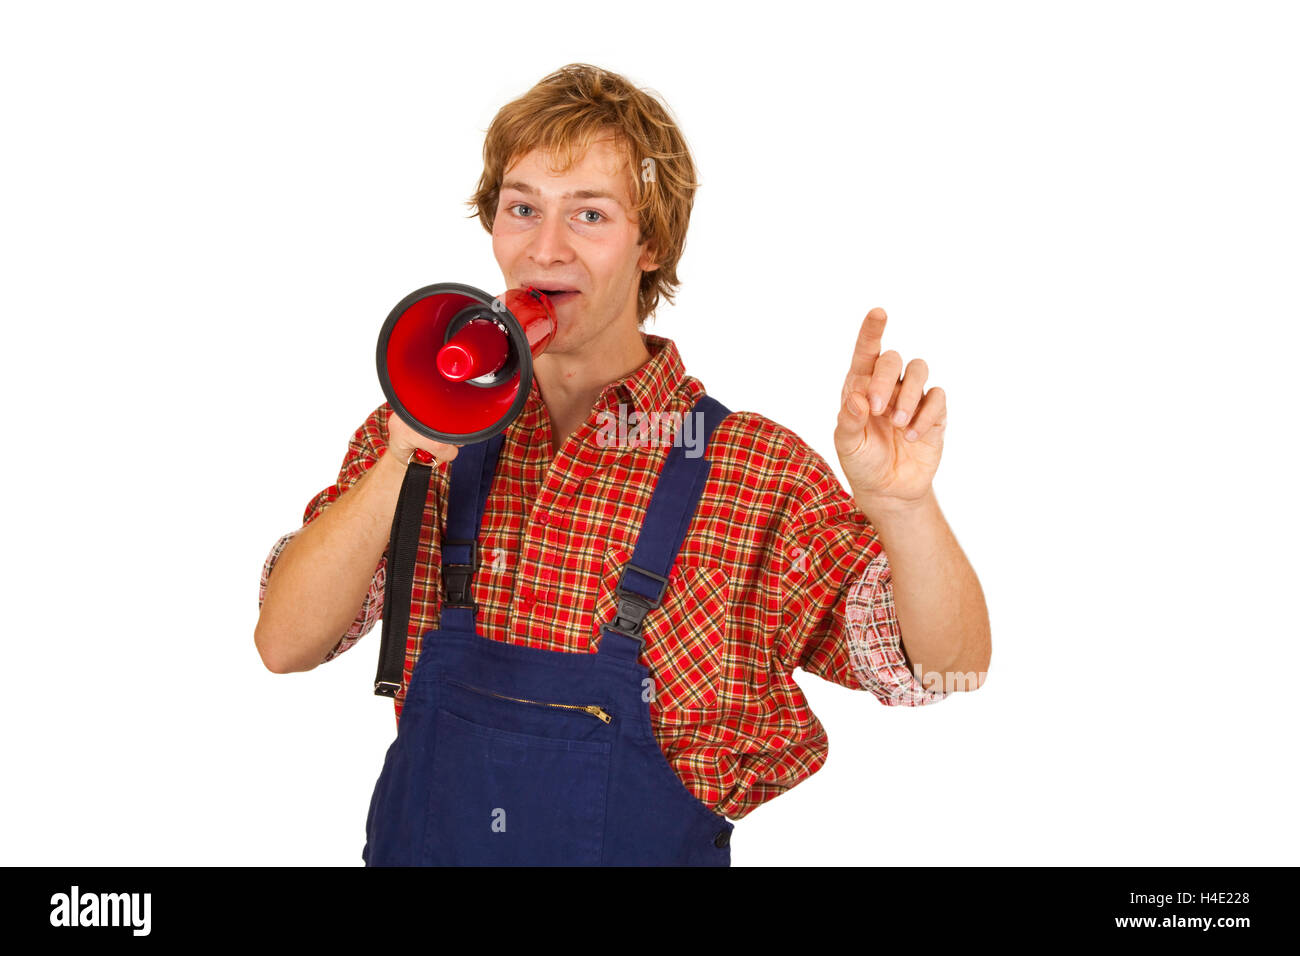 Young handcrafter with megaphone isoladet on white background Stock Photo